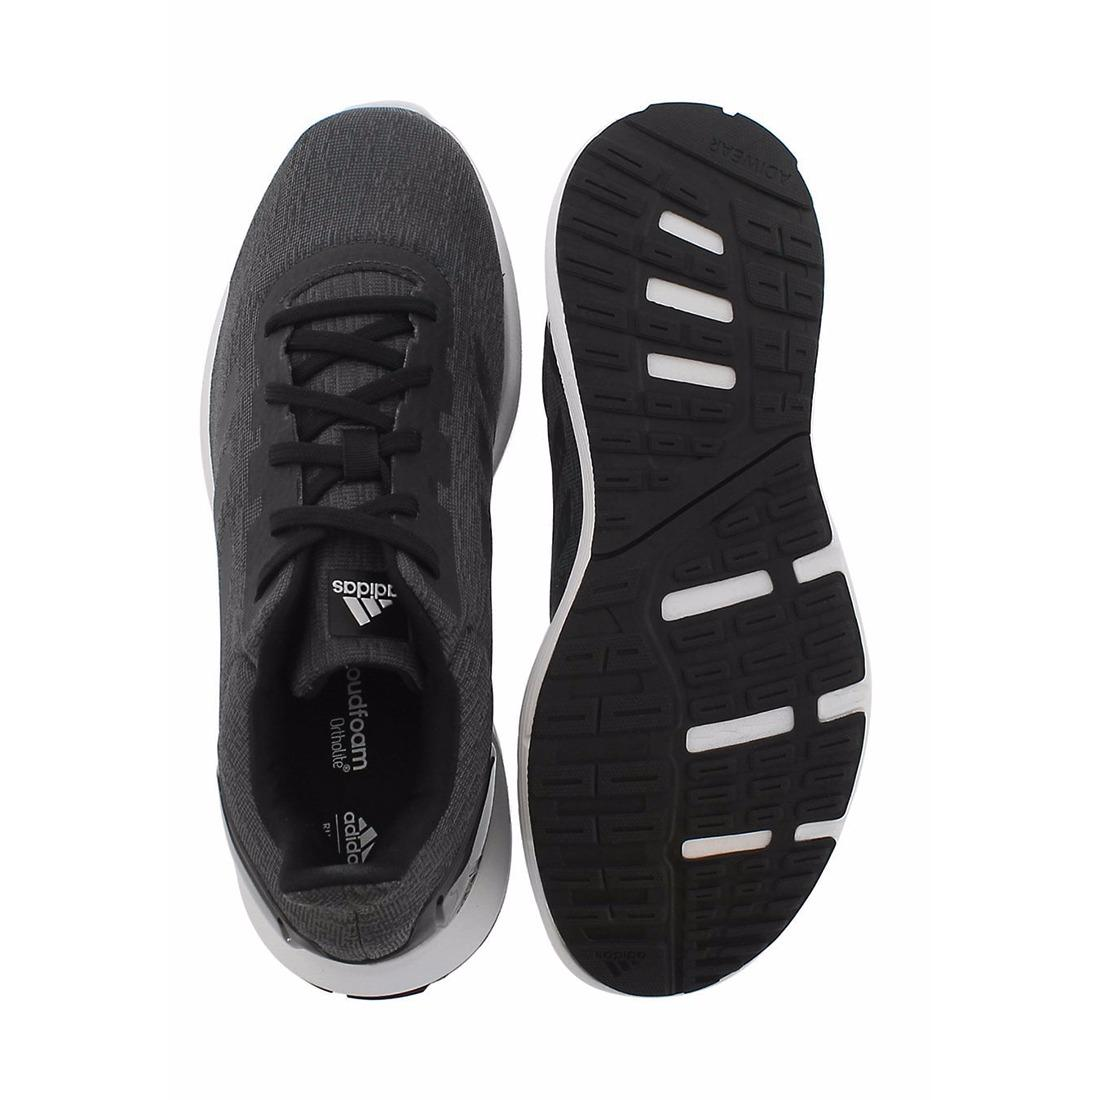 Adidas Cosmic M BB4344 Running Black/Black-White - 2 ...